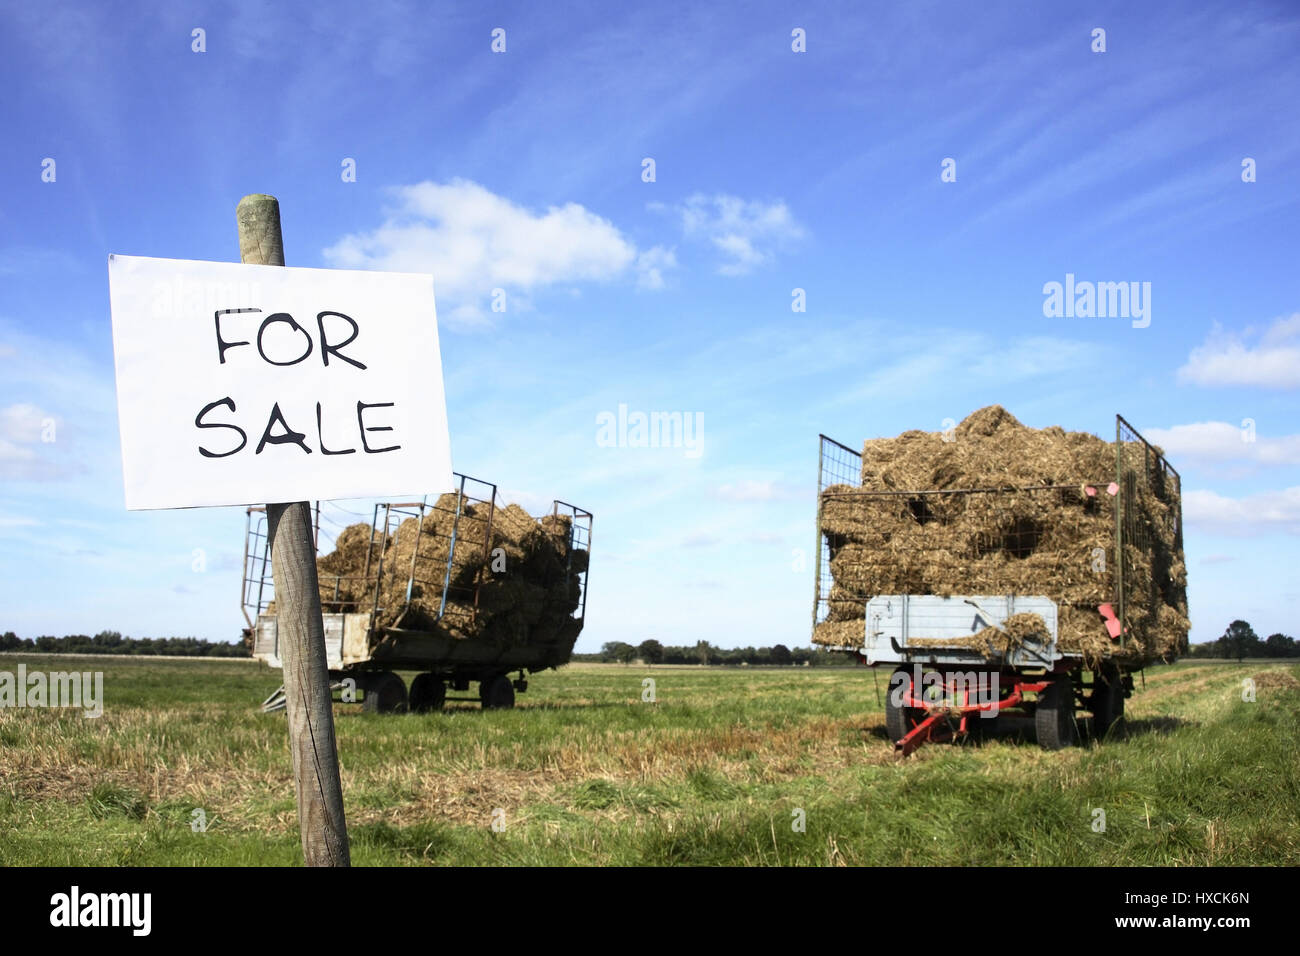 For Sale - Stock Image